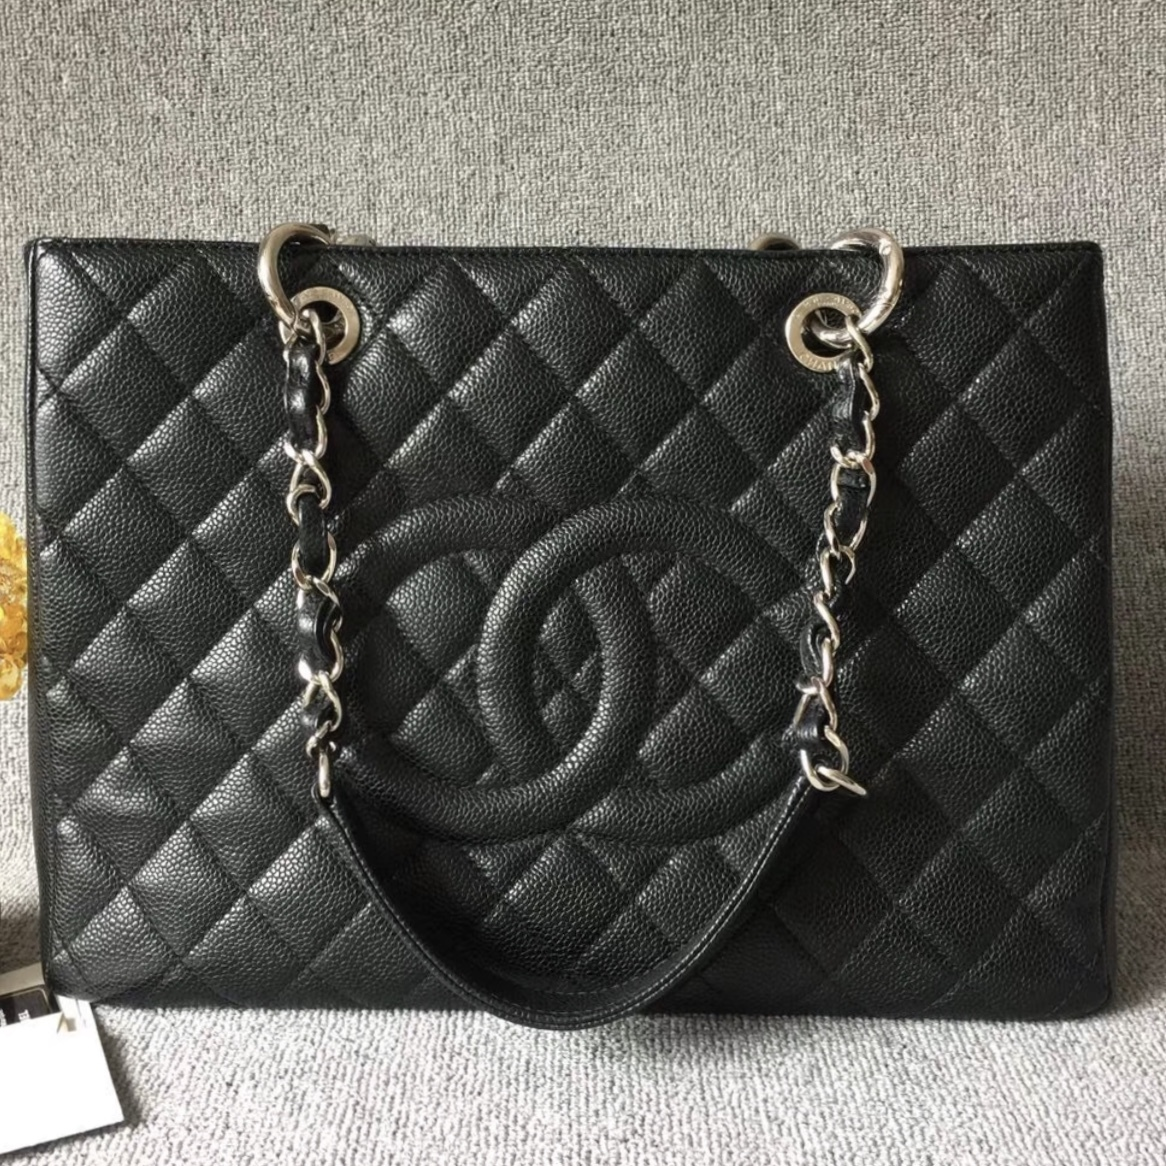 4f68bcb875d6 AUTH CHANEL QUILTED CAVIAR GST WITH RECEIPT GRAND SHOPPING TOTE BAG ...